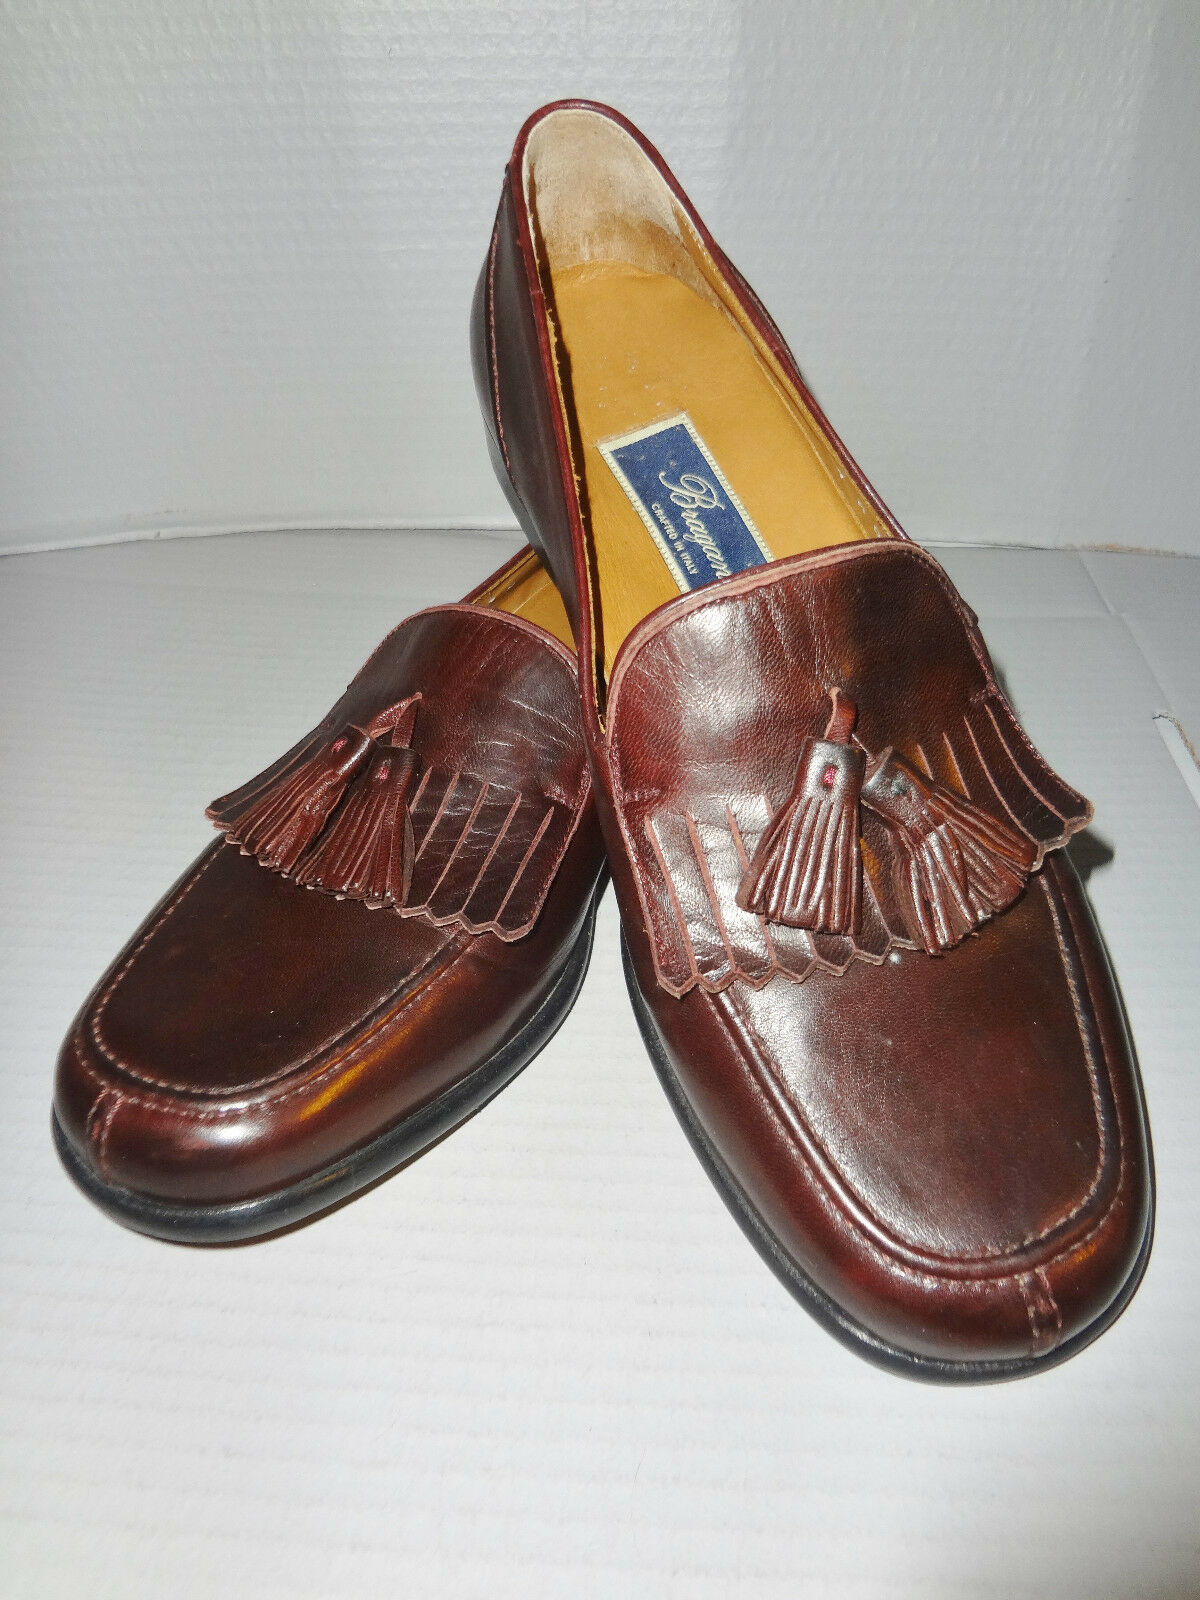 New - Bragano - Brown Loafer - Tassel - Size 7 M - Made in